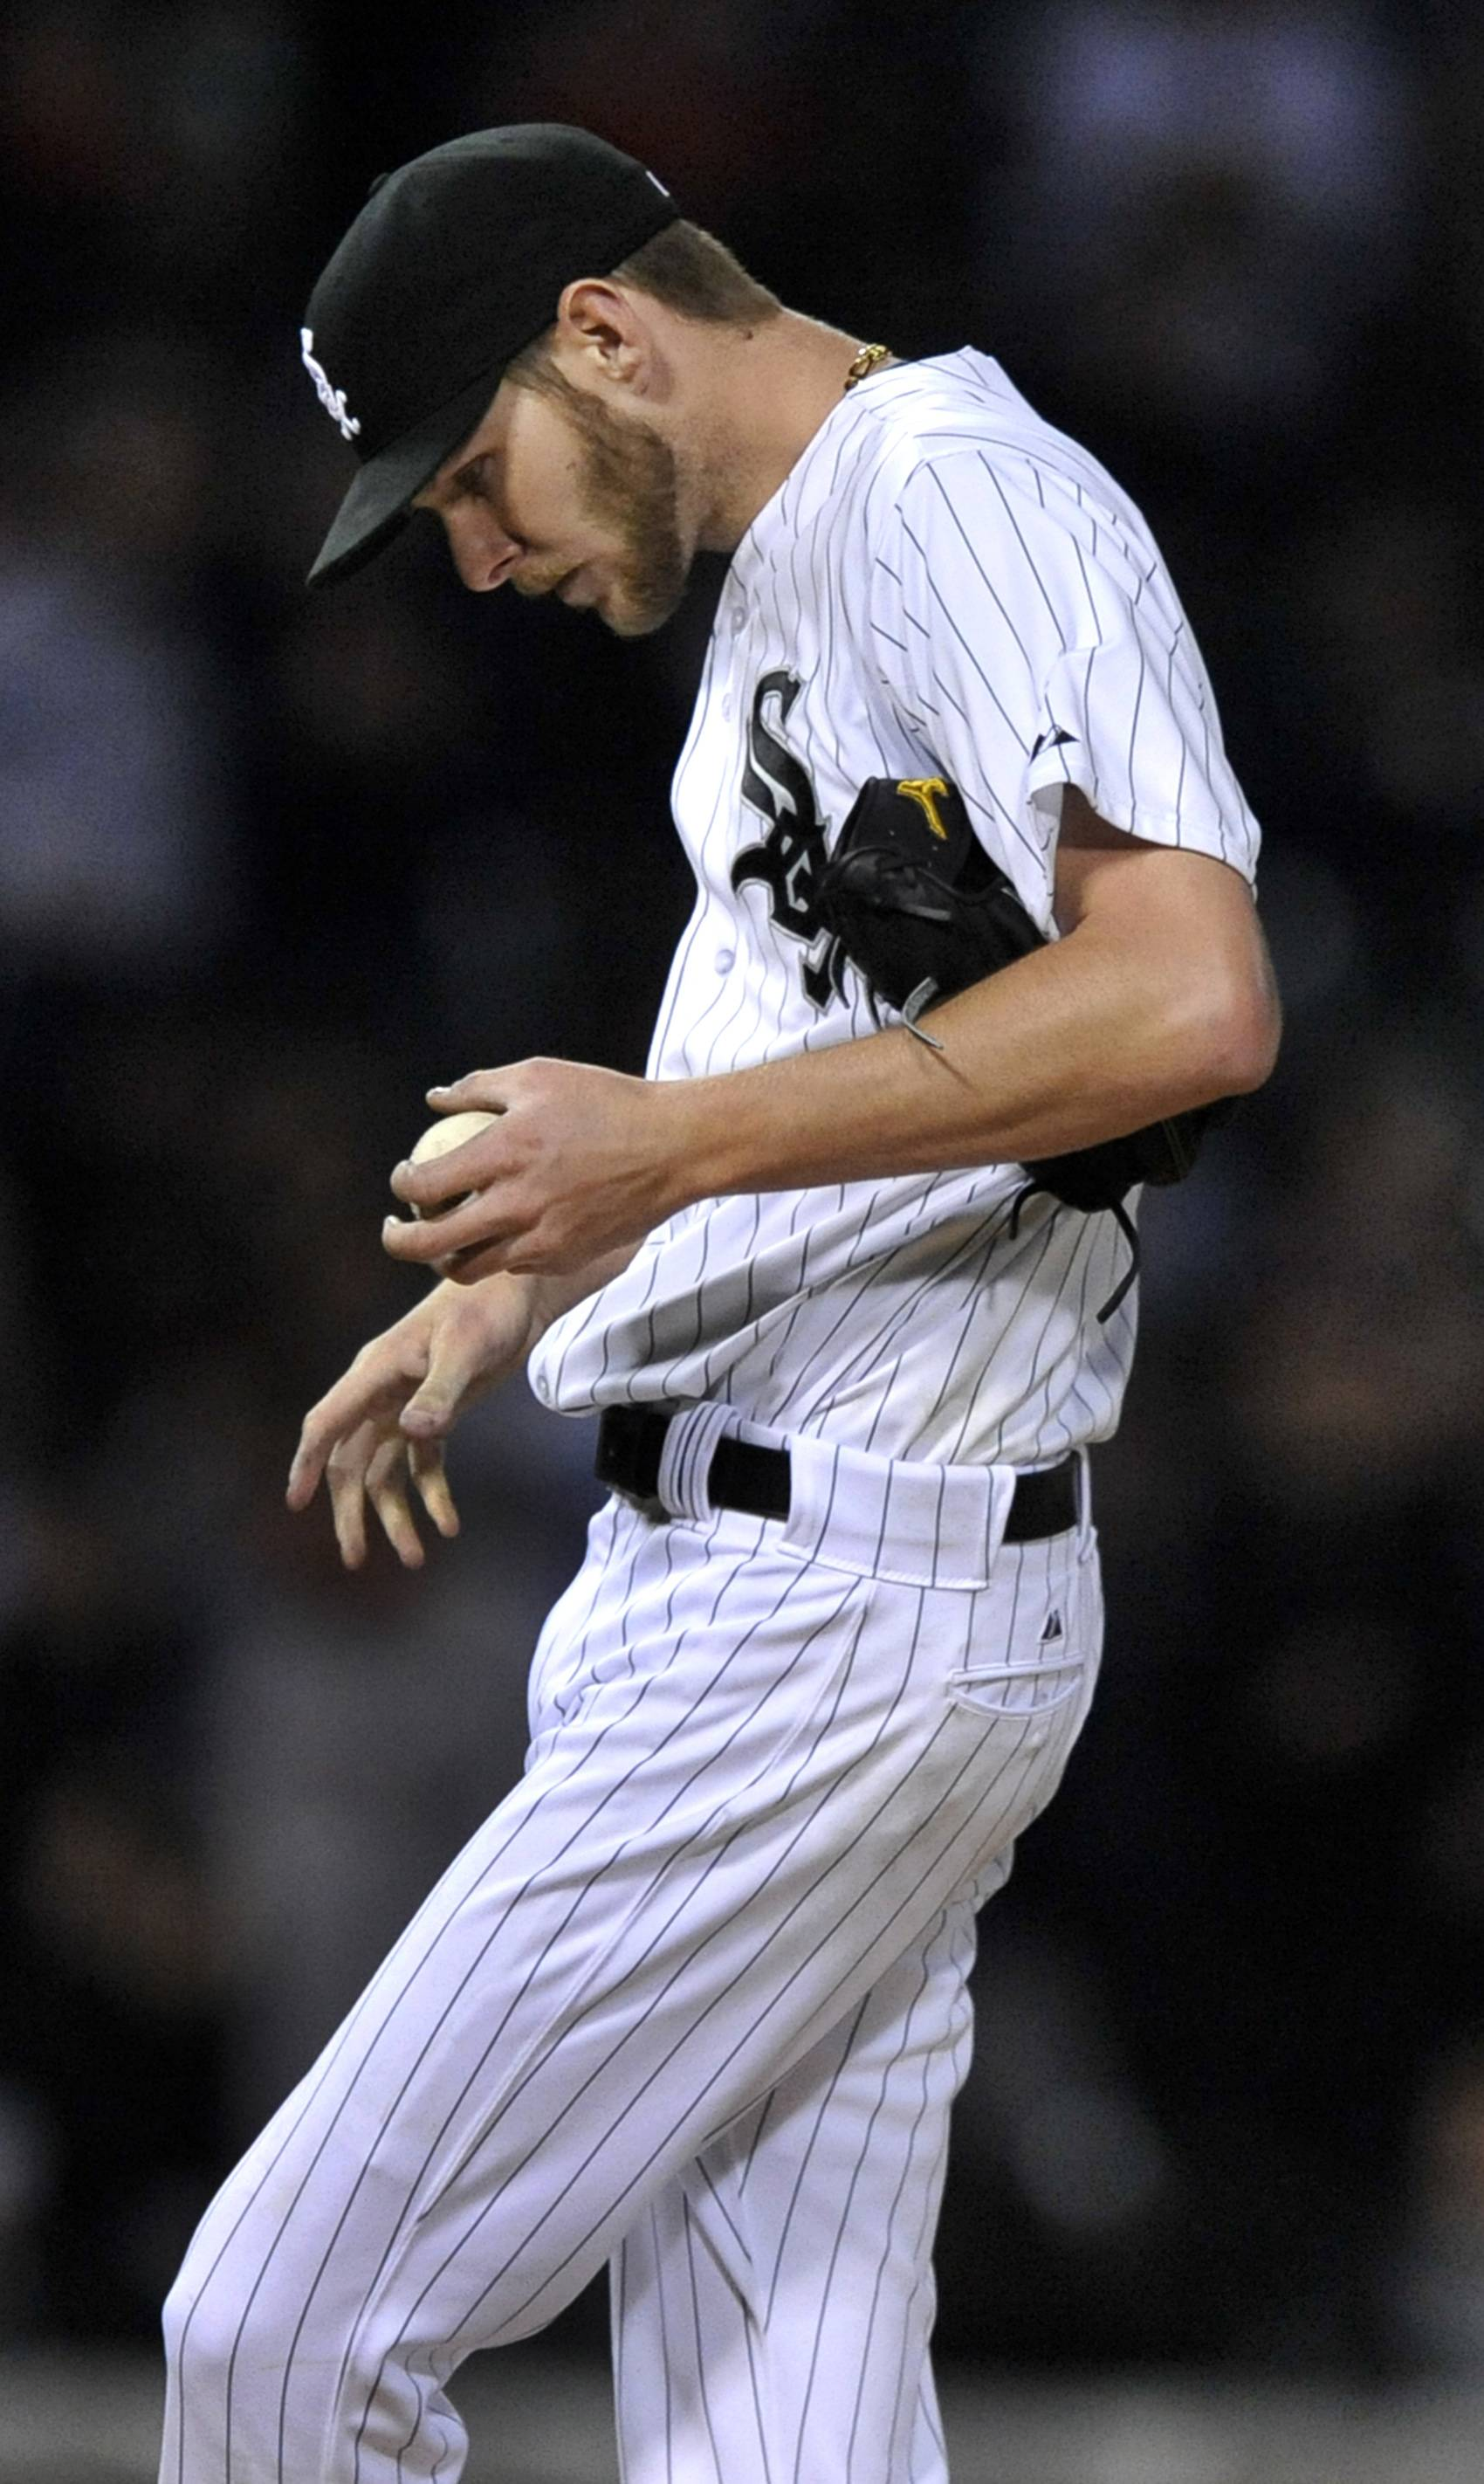 Chicago White Sox starting pitcher Chris Sale reacts to giving up a solo home run to Boston Red Sox's Xander Bogaerts during the sixth inning of a baseball game in Chicago, Thursday, April 17, 2014.